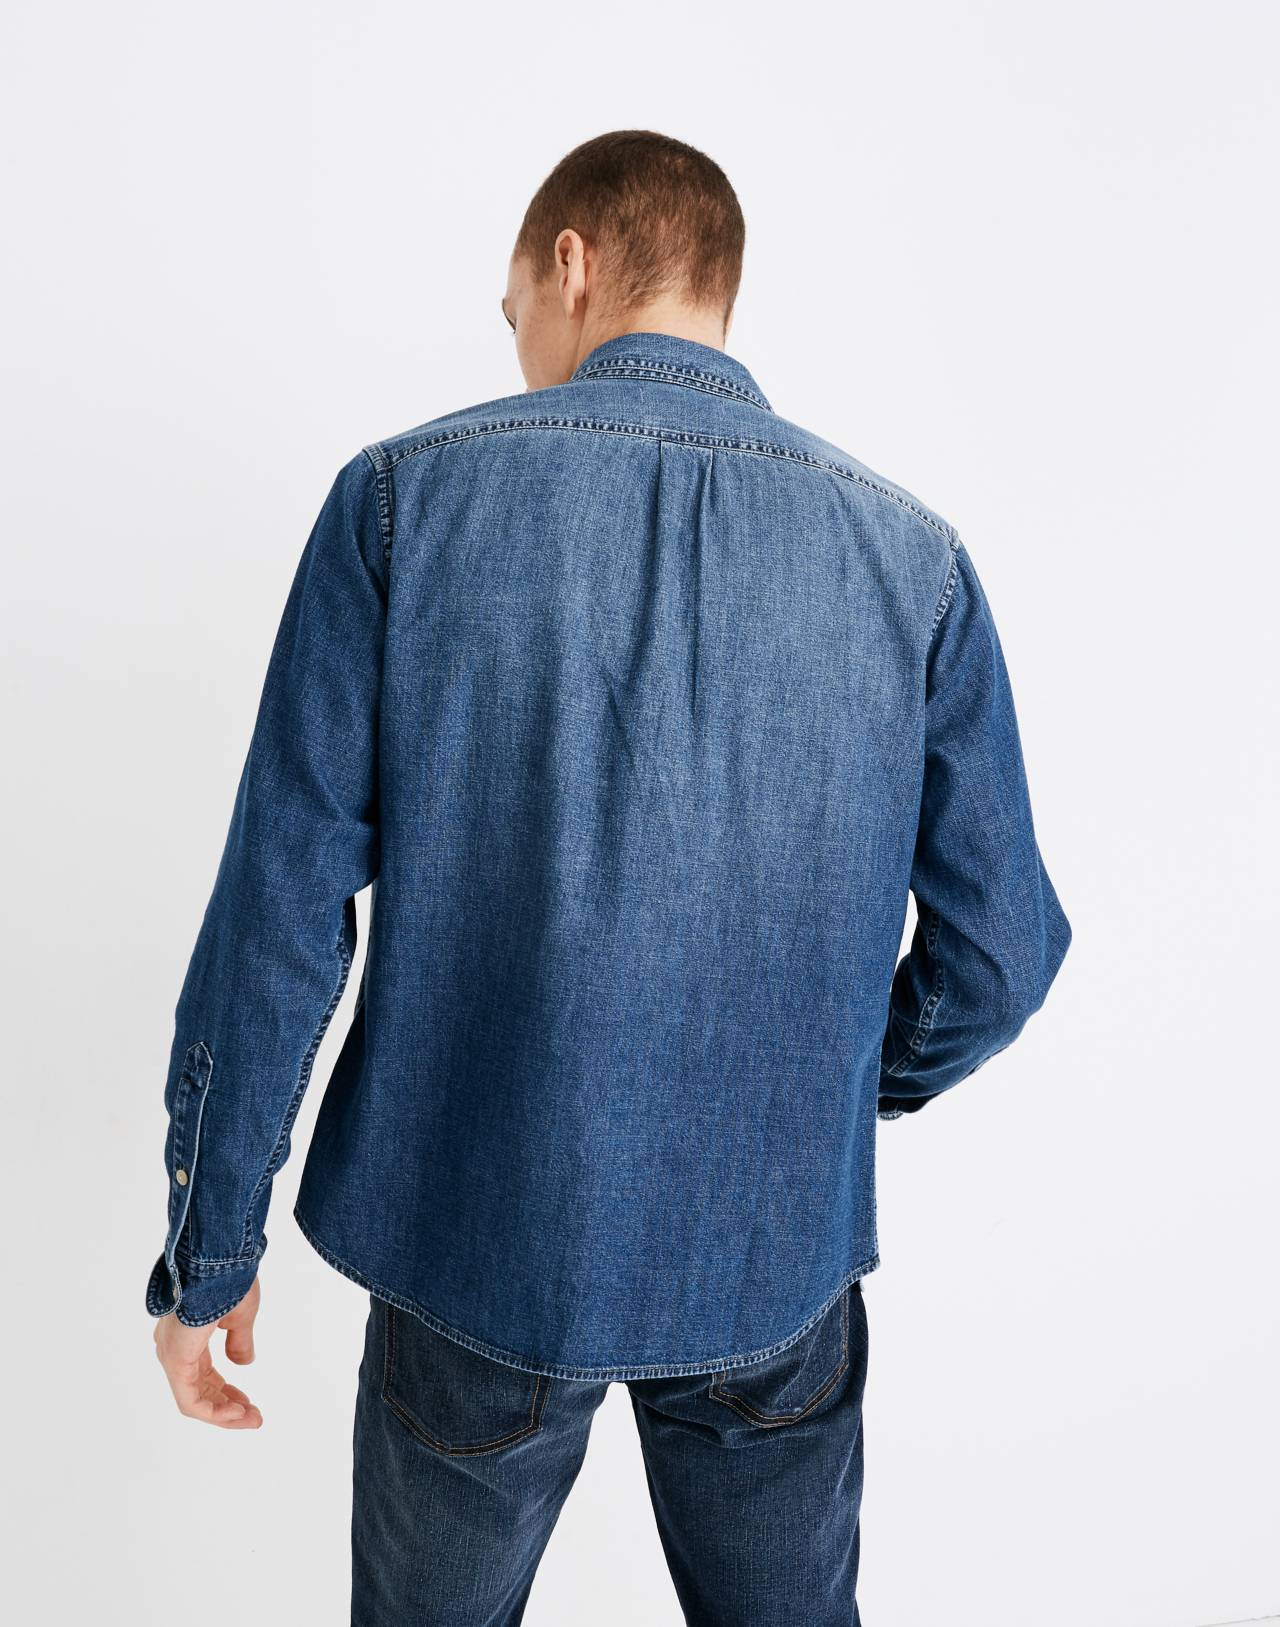 Denim Button-Down Shirt in Newhall Wash in newhall wash image 3